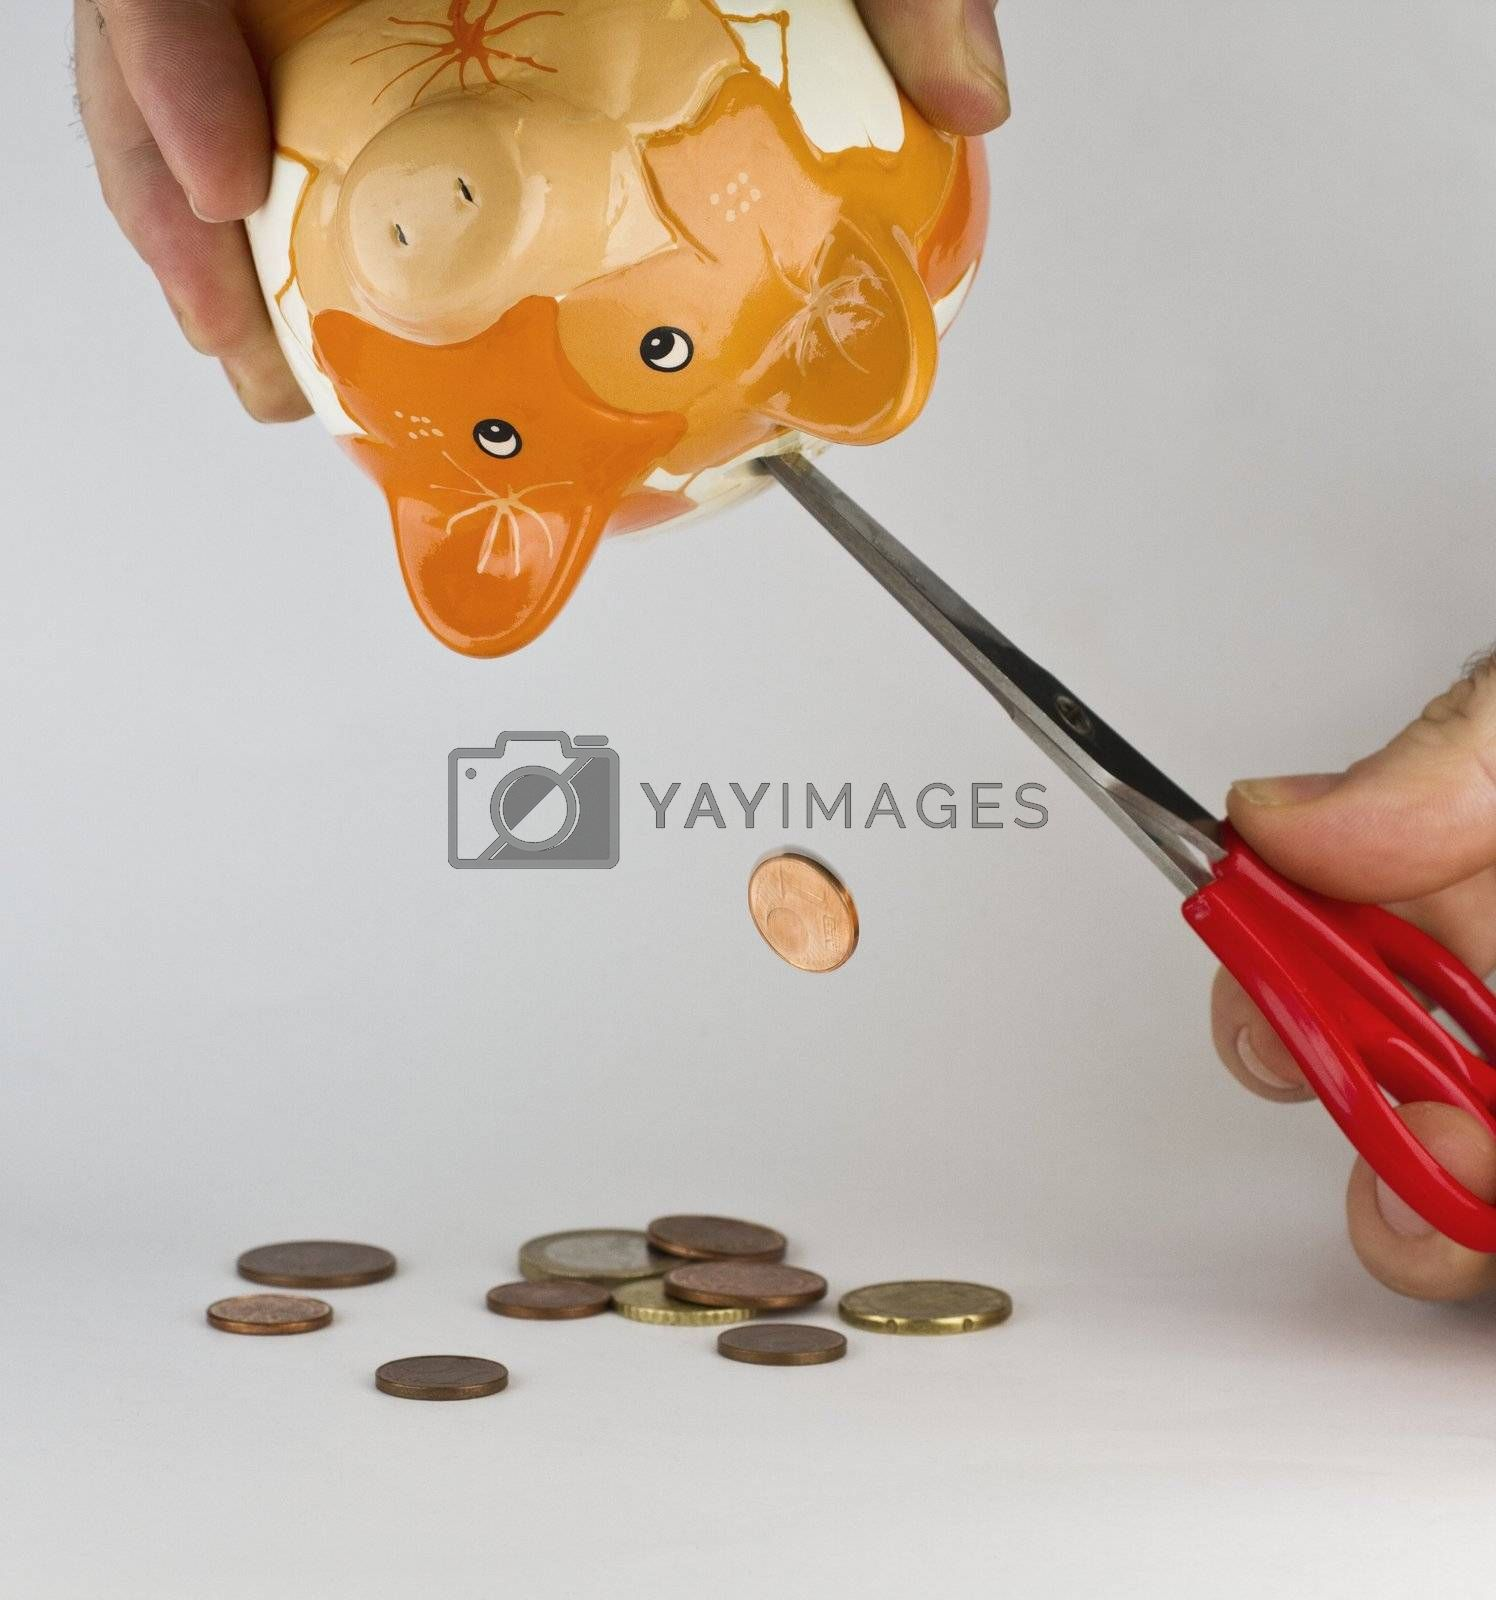 getting money out of piggybank with a cutter. Synonym for financial straits or shortage of money